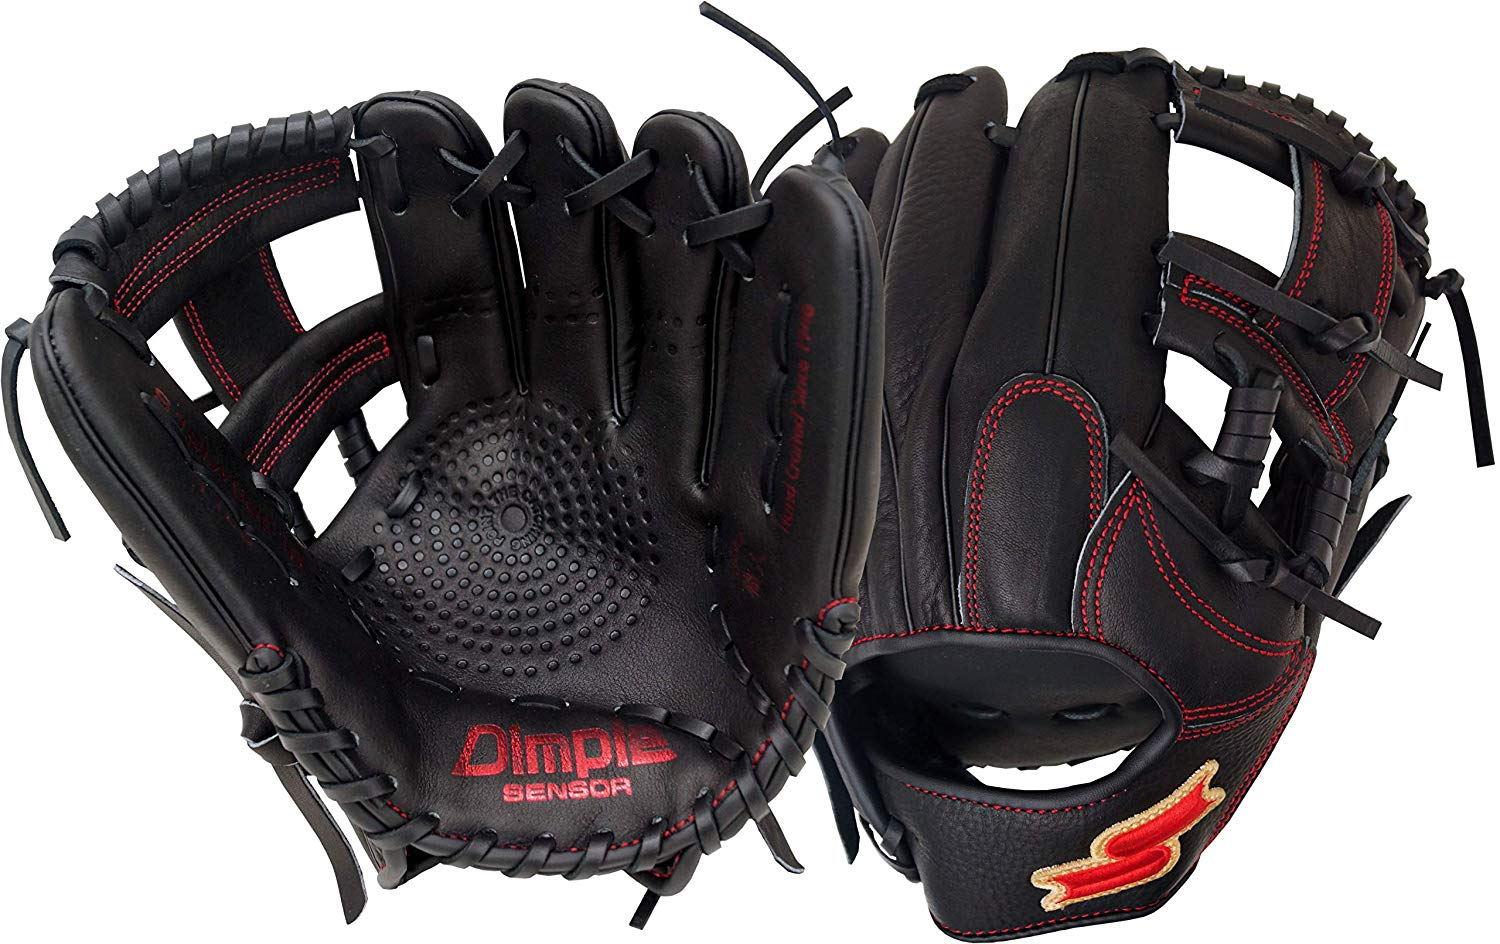 ssk-red-line-series-11-5-baseball-glove-right-hand-throw S19IW9901R-RightHandThrow SSK 083351452605 Crafted with top grain steerhide for exceptional durability Dimple Sensor Technology